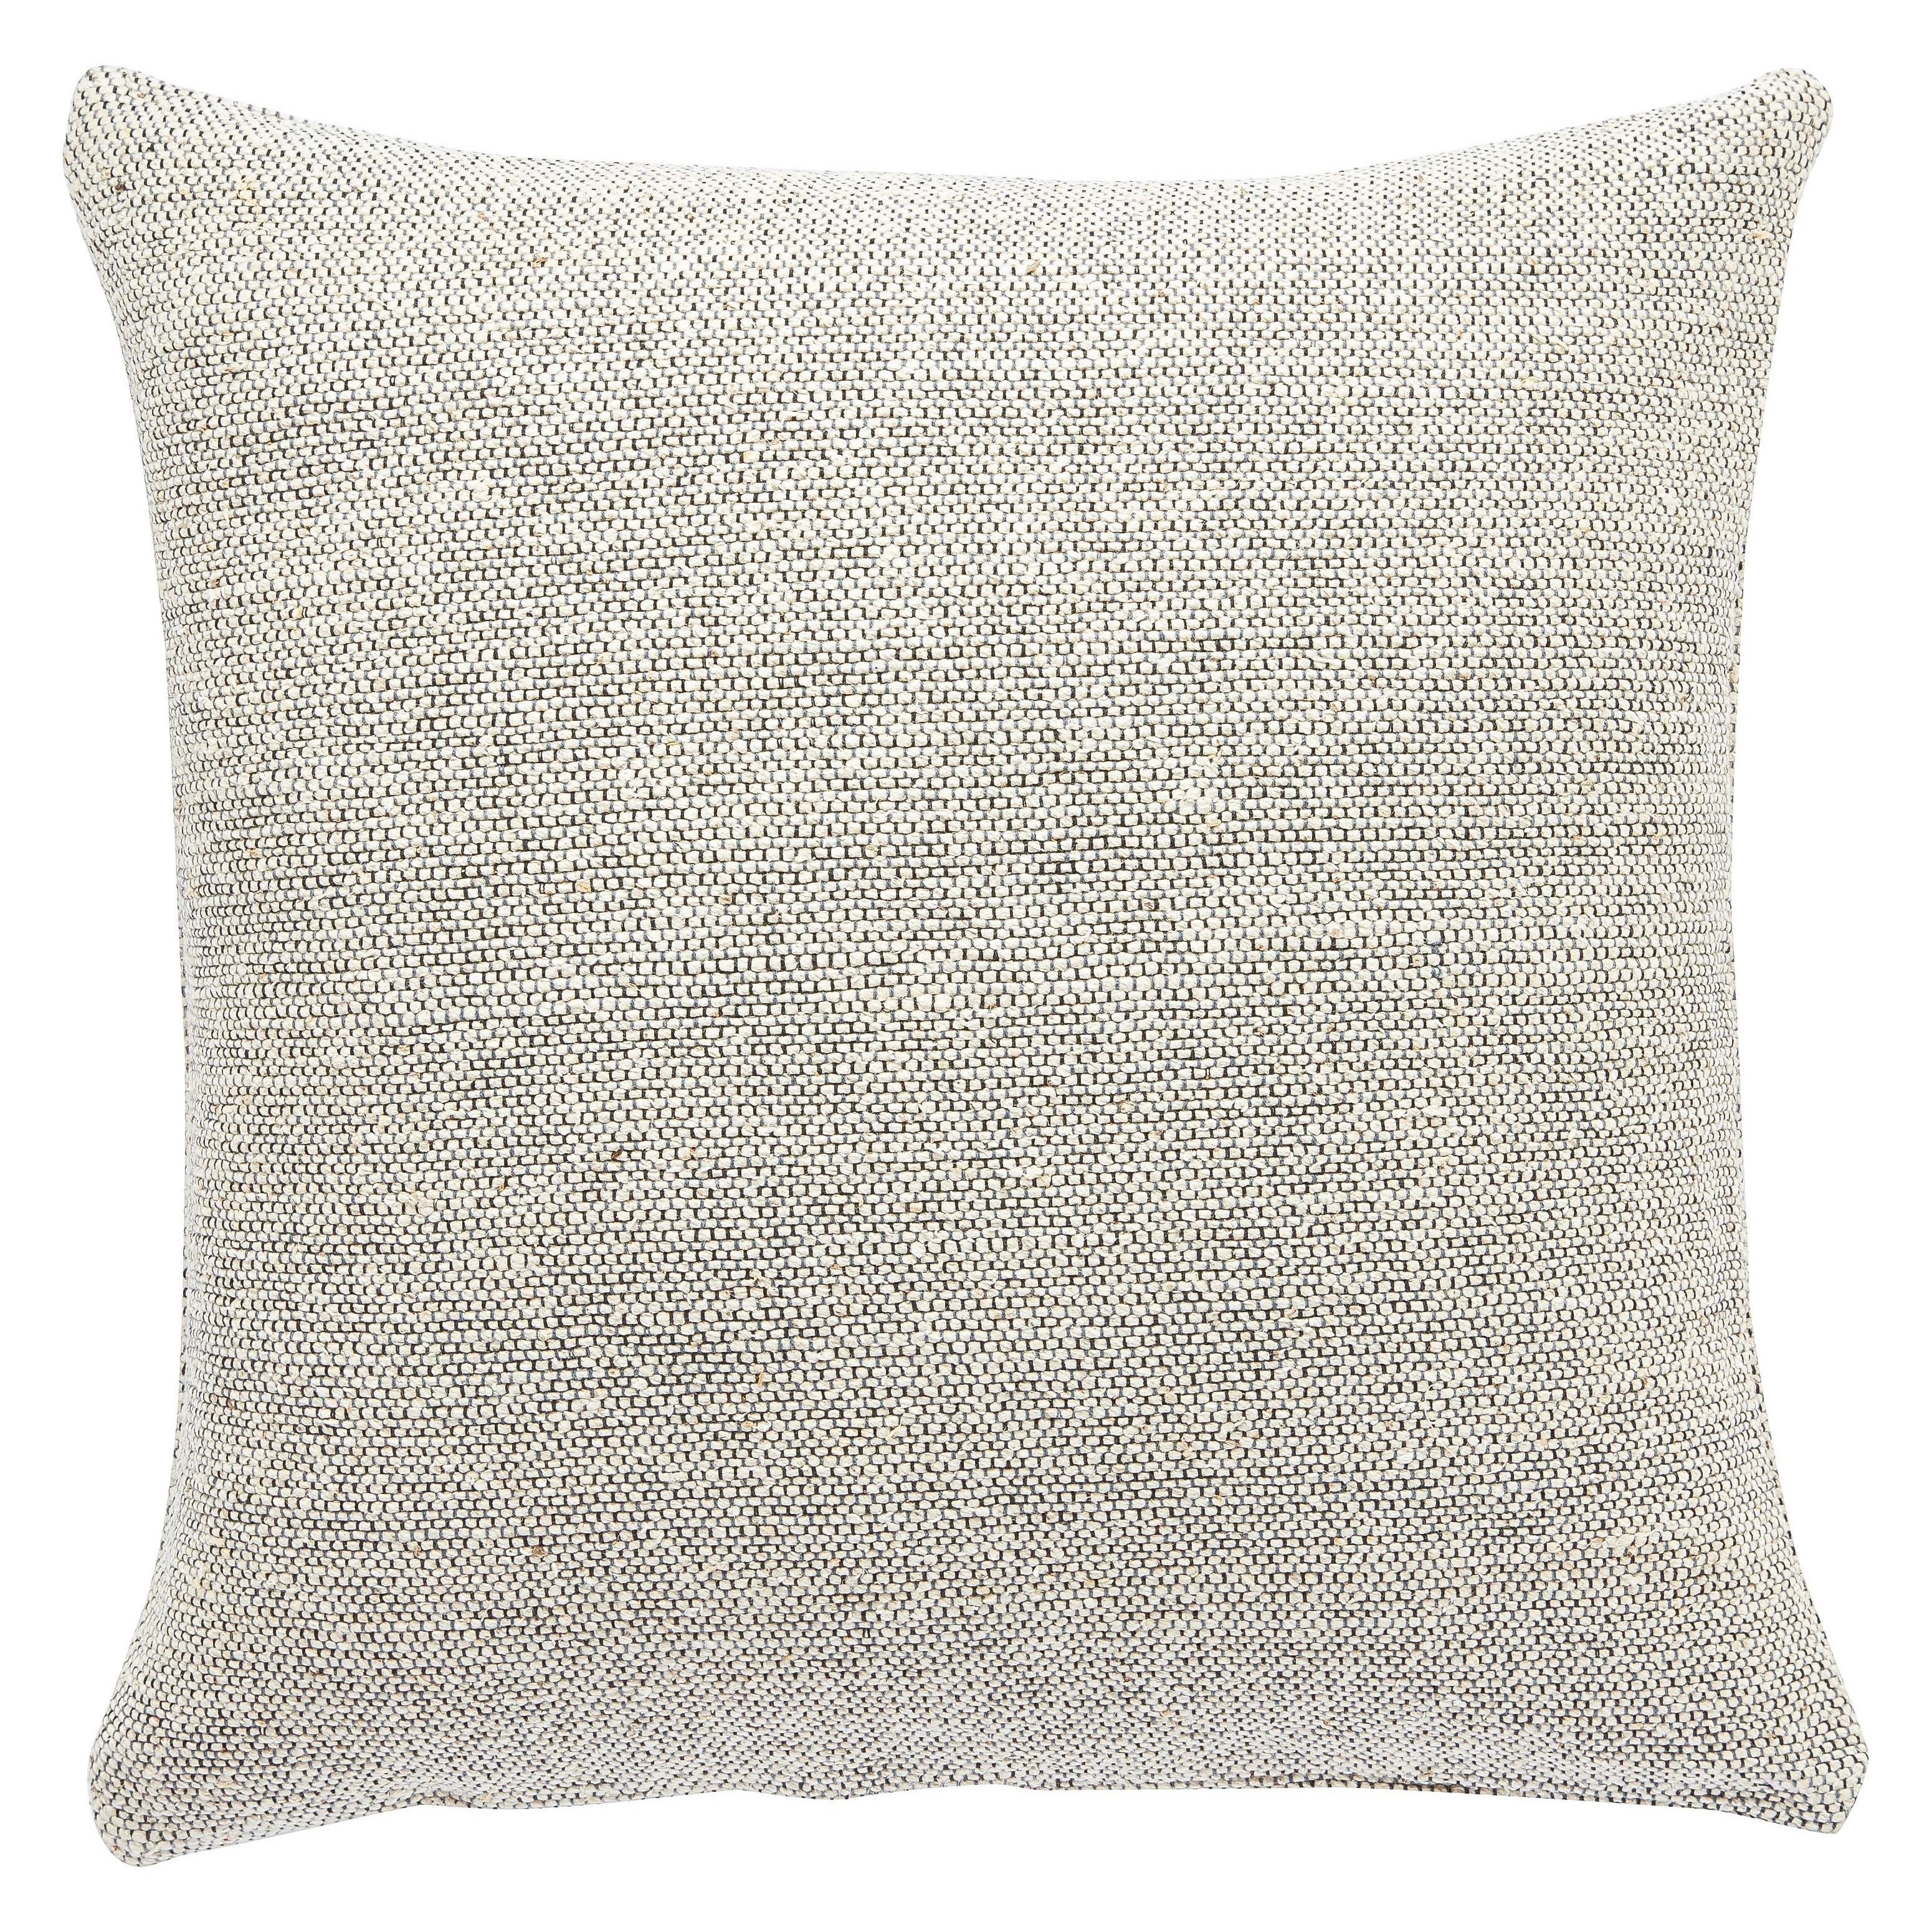 Crispin Solid Gray Cream Throw Pillow Overstock 16389838